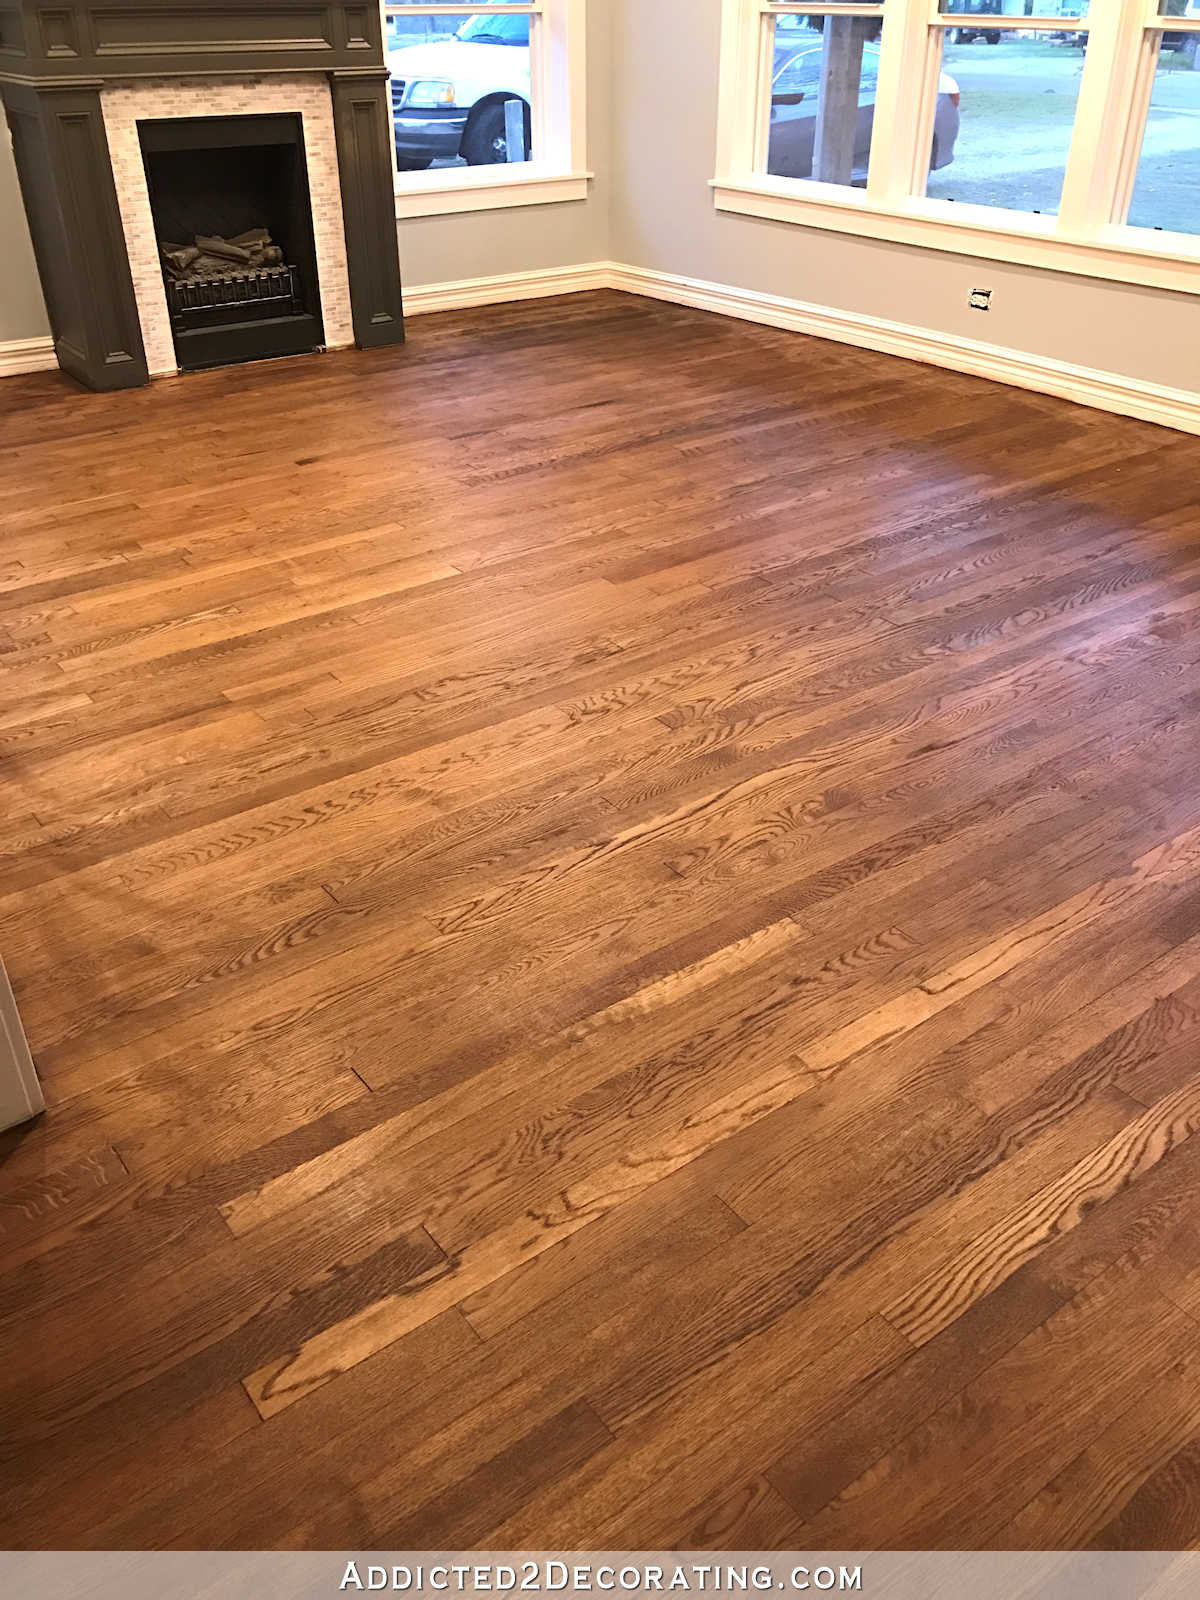 28 Famous 5 Red Oak Hardwood Flooring 2021 free download 5 red oak hardwood flooring of adventures in staining my red oak hardwood floors products process for staining red oak hardwood floors 8a living room and entryway